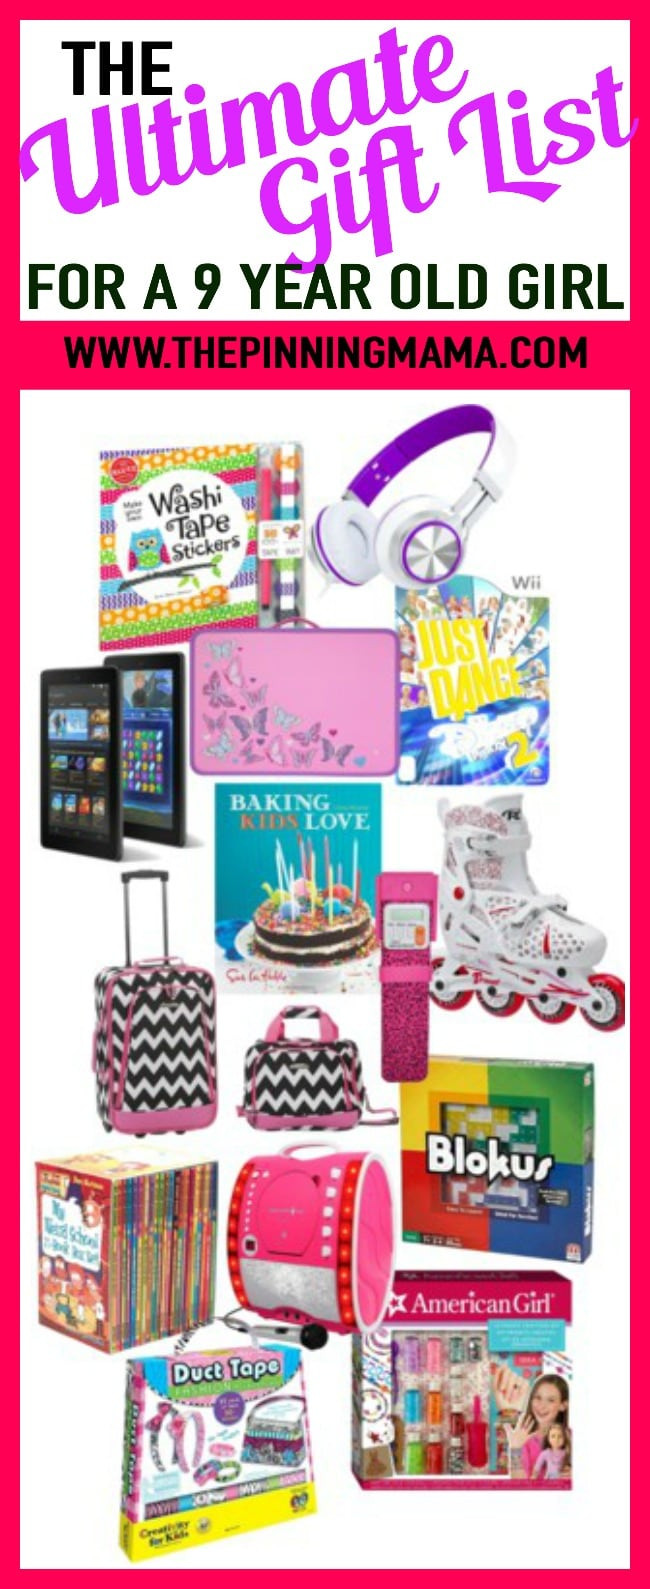 Best ideas about Christmas Gift Ideas For 9 Year Old Girl . Save or Pin The Ultimate Gift List for a 9 Year Old Girl Now.